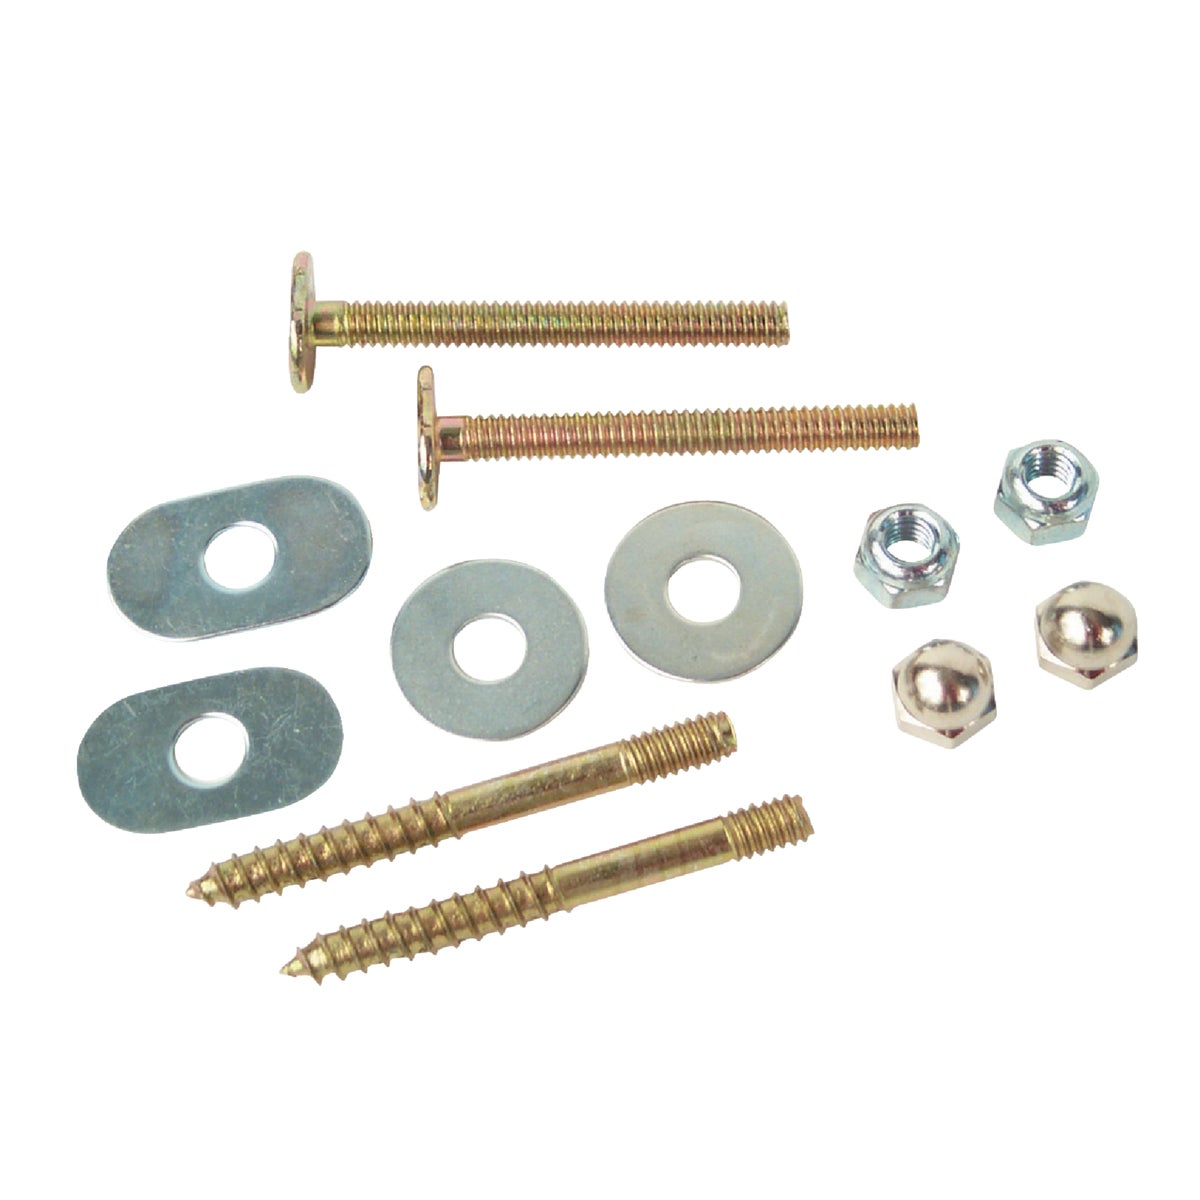 "1/4"" TLT BOLT/SCREW SET - 436844 by Do it Best"